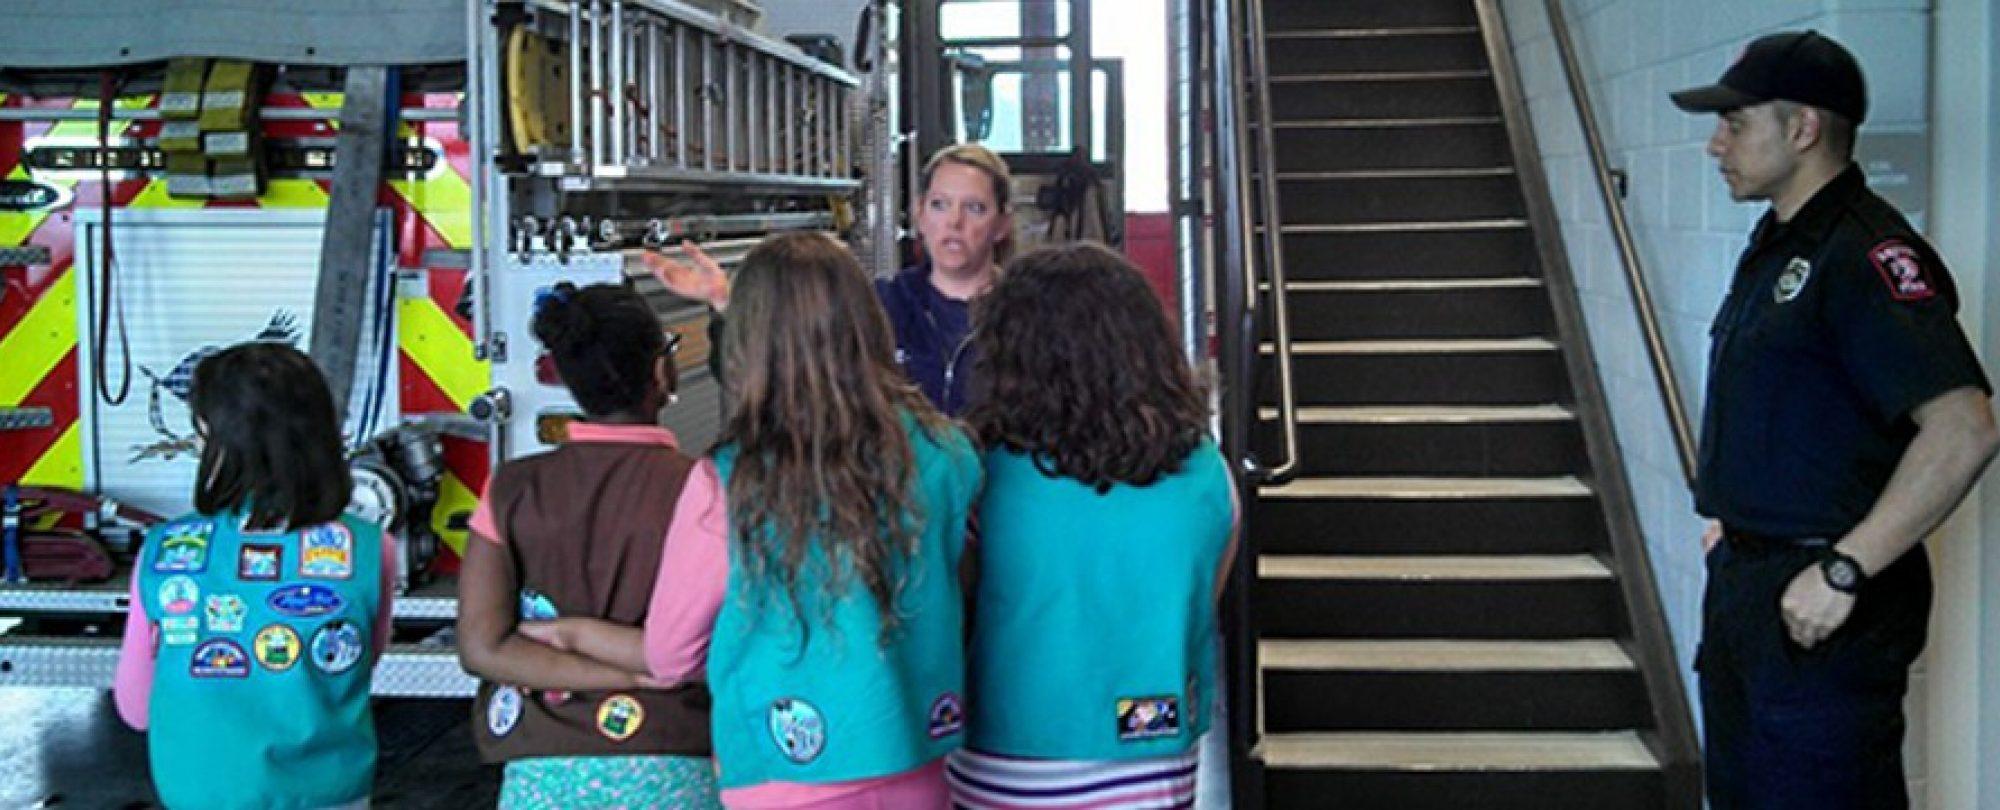 girls scouts touring a fire house